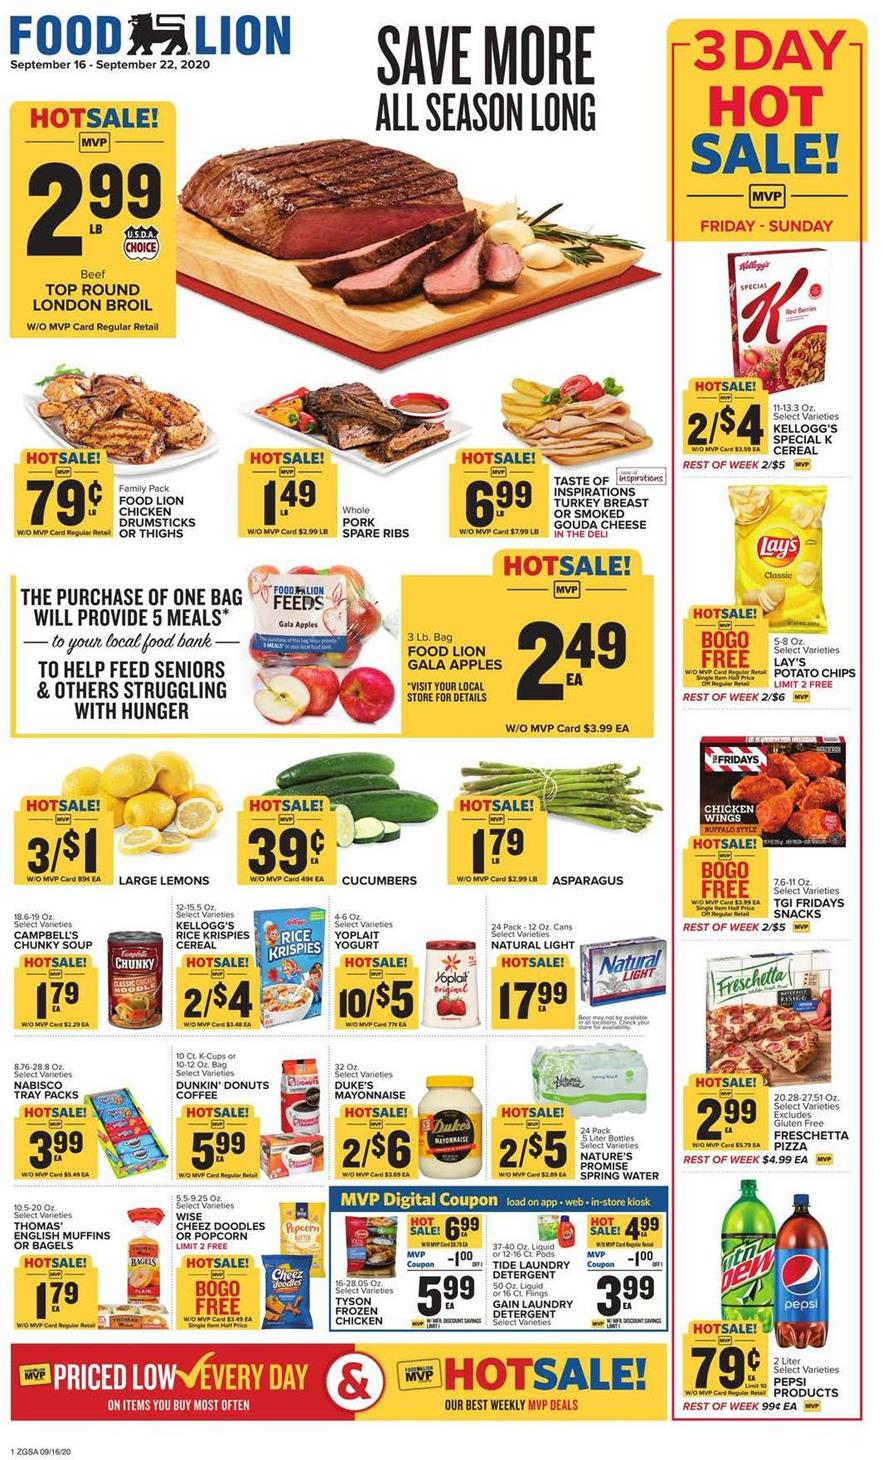 Food Lion Weekly September Ad valid from Sep 16 – 22, 2020